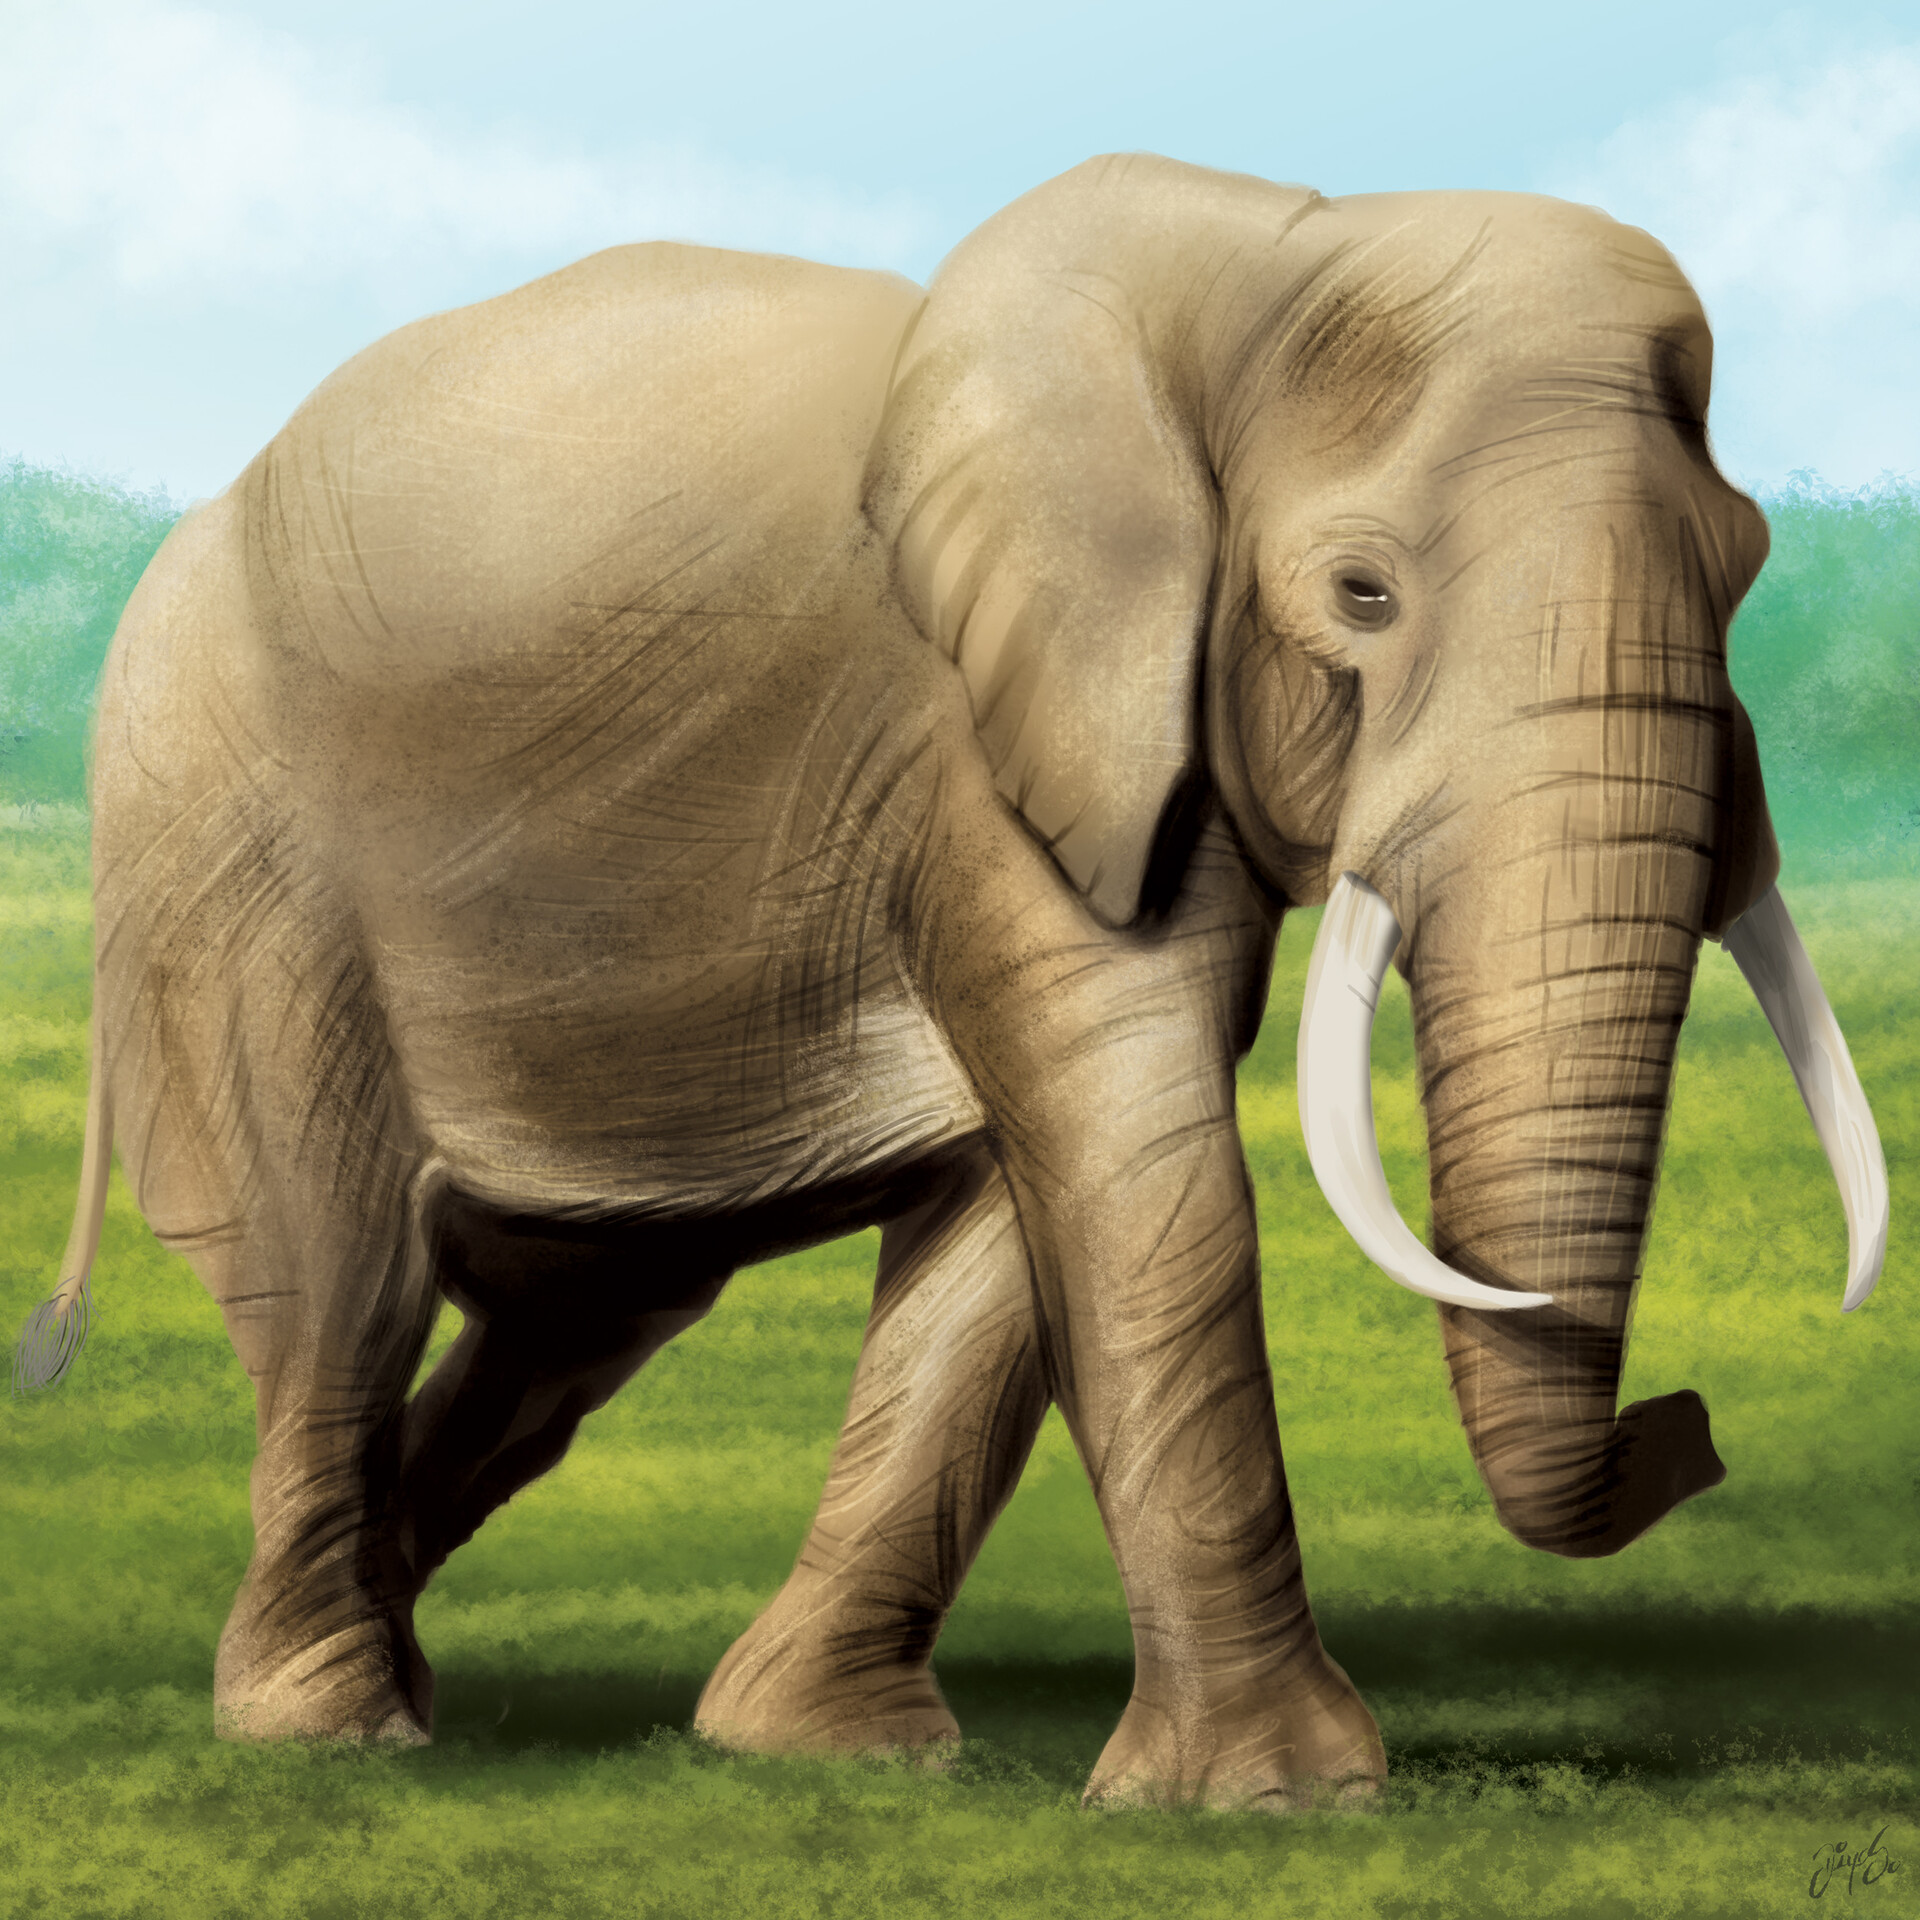 Tile illustration - Elephant